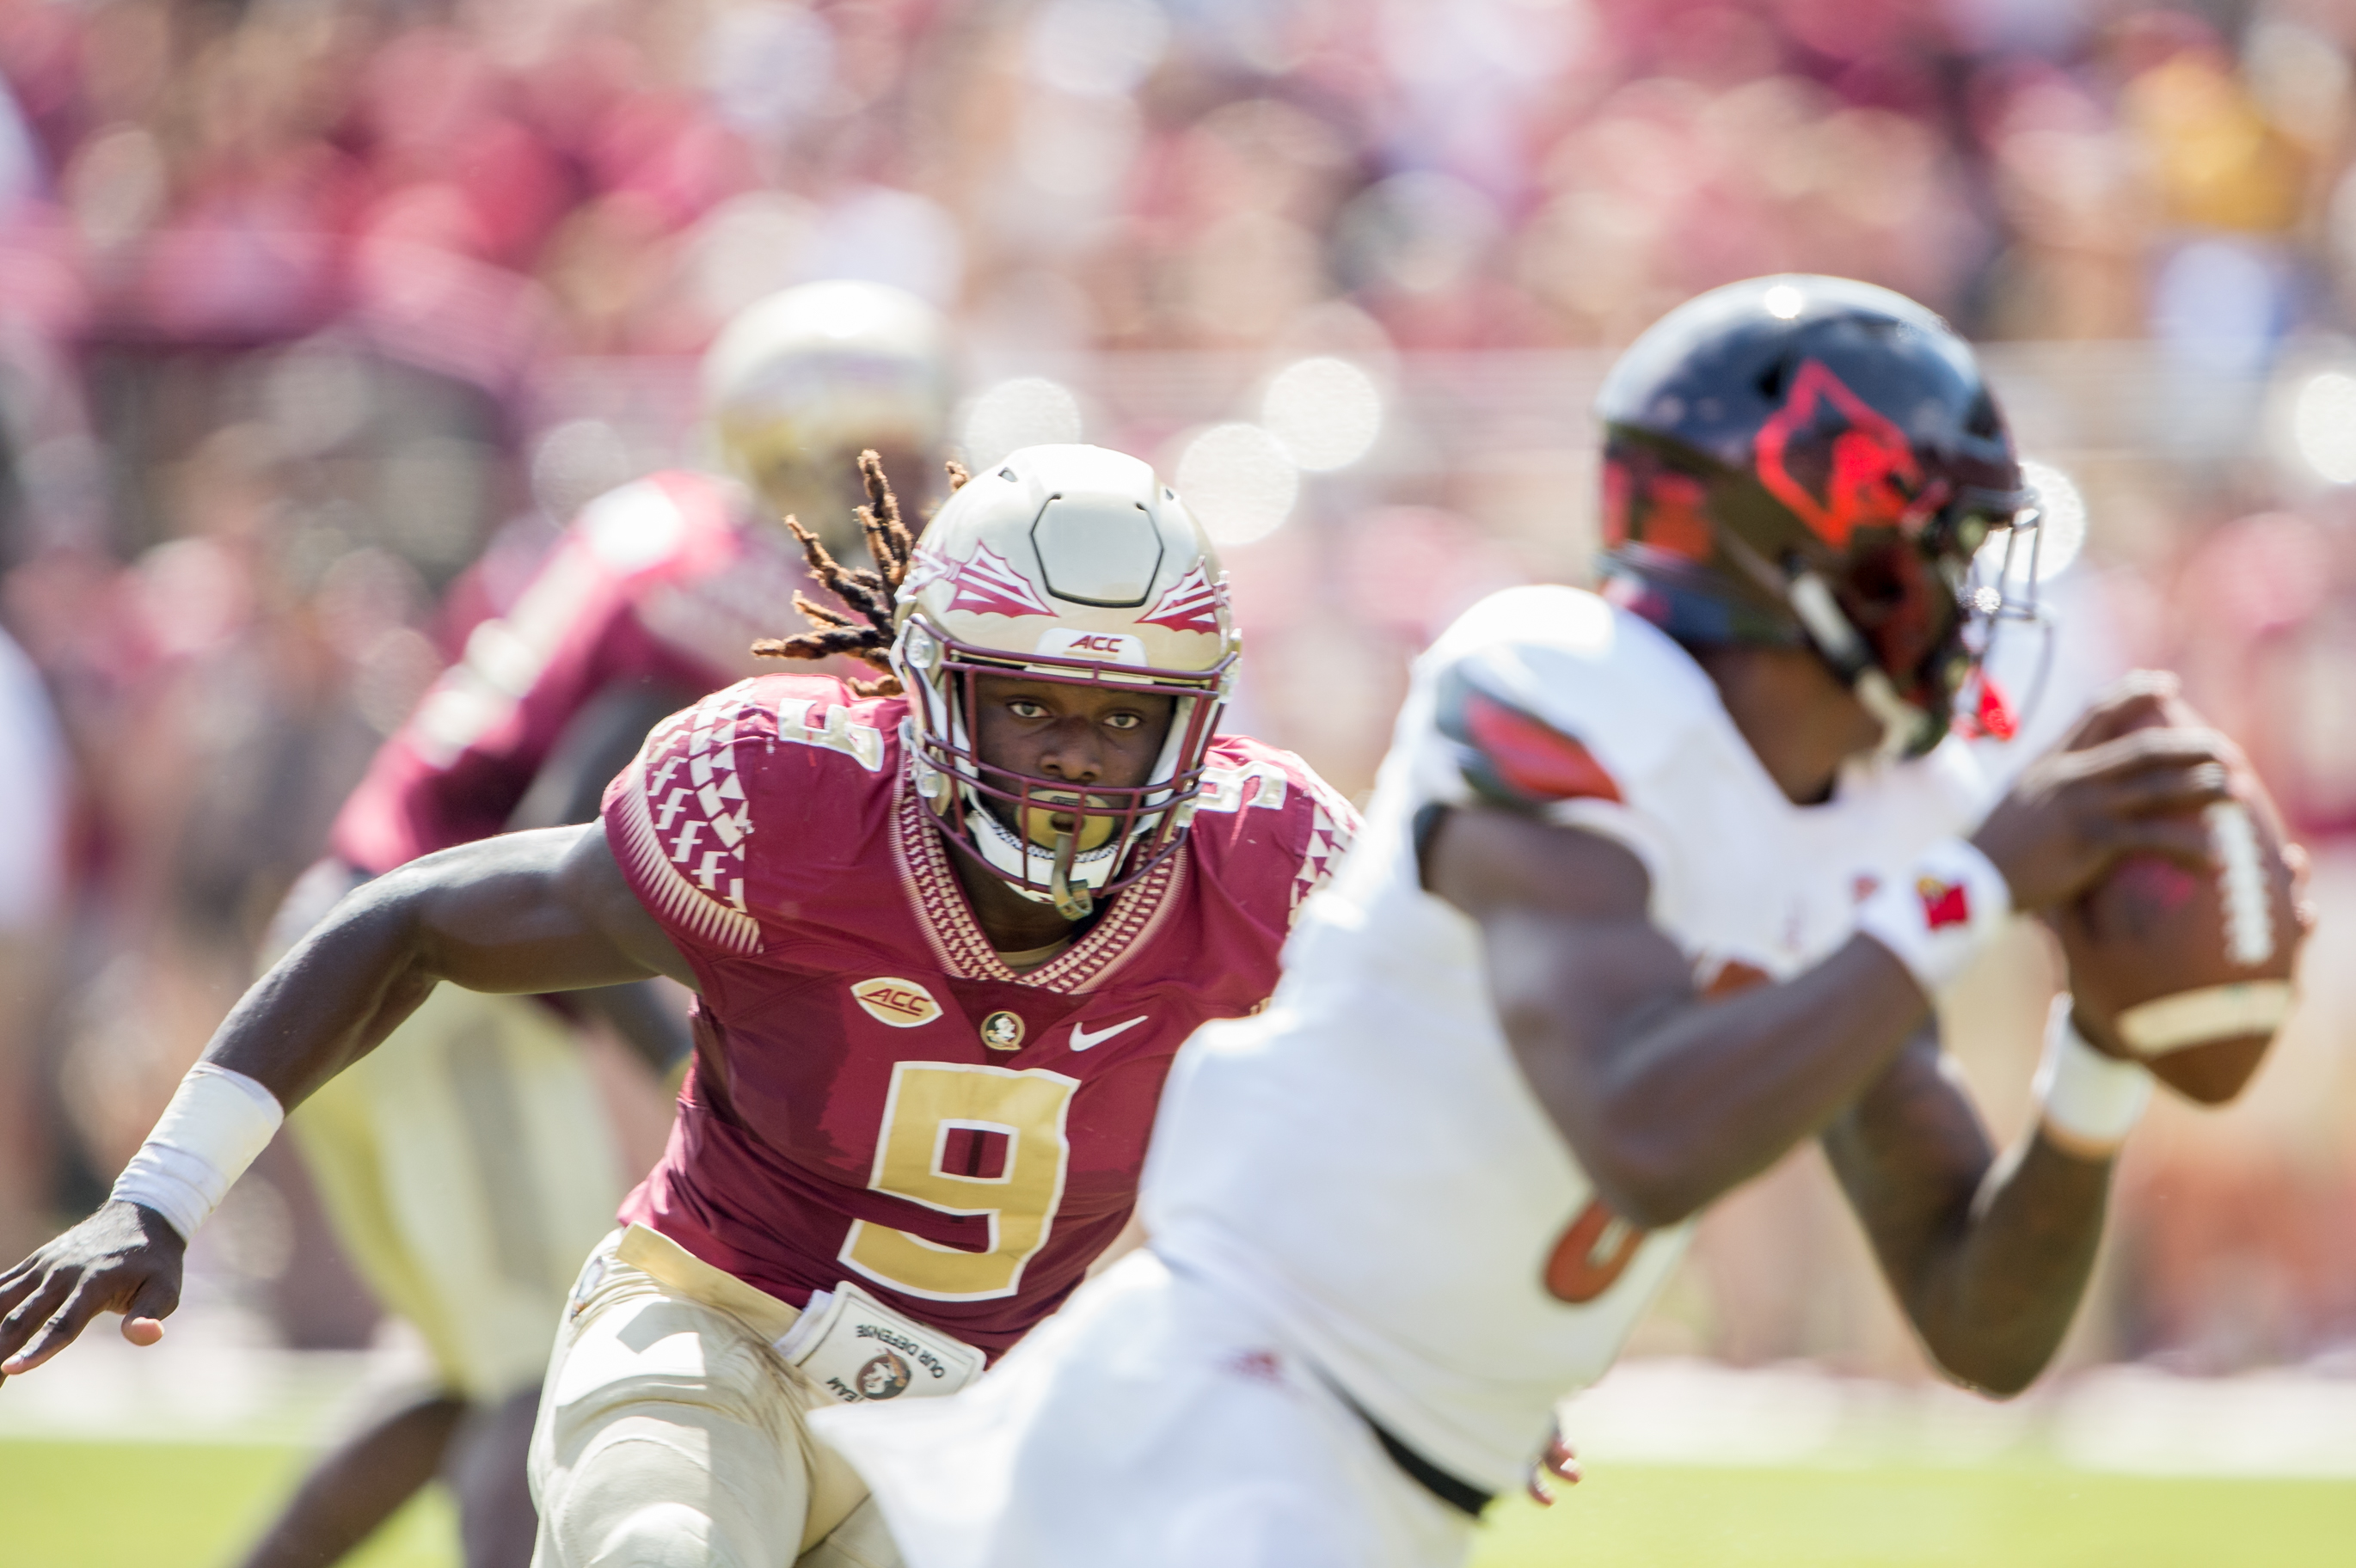 Noles News: Alabama Surpasses FSU And Ties Ohio State For Most Players  Selected In A Single Draft